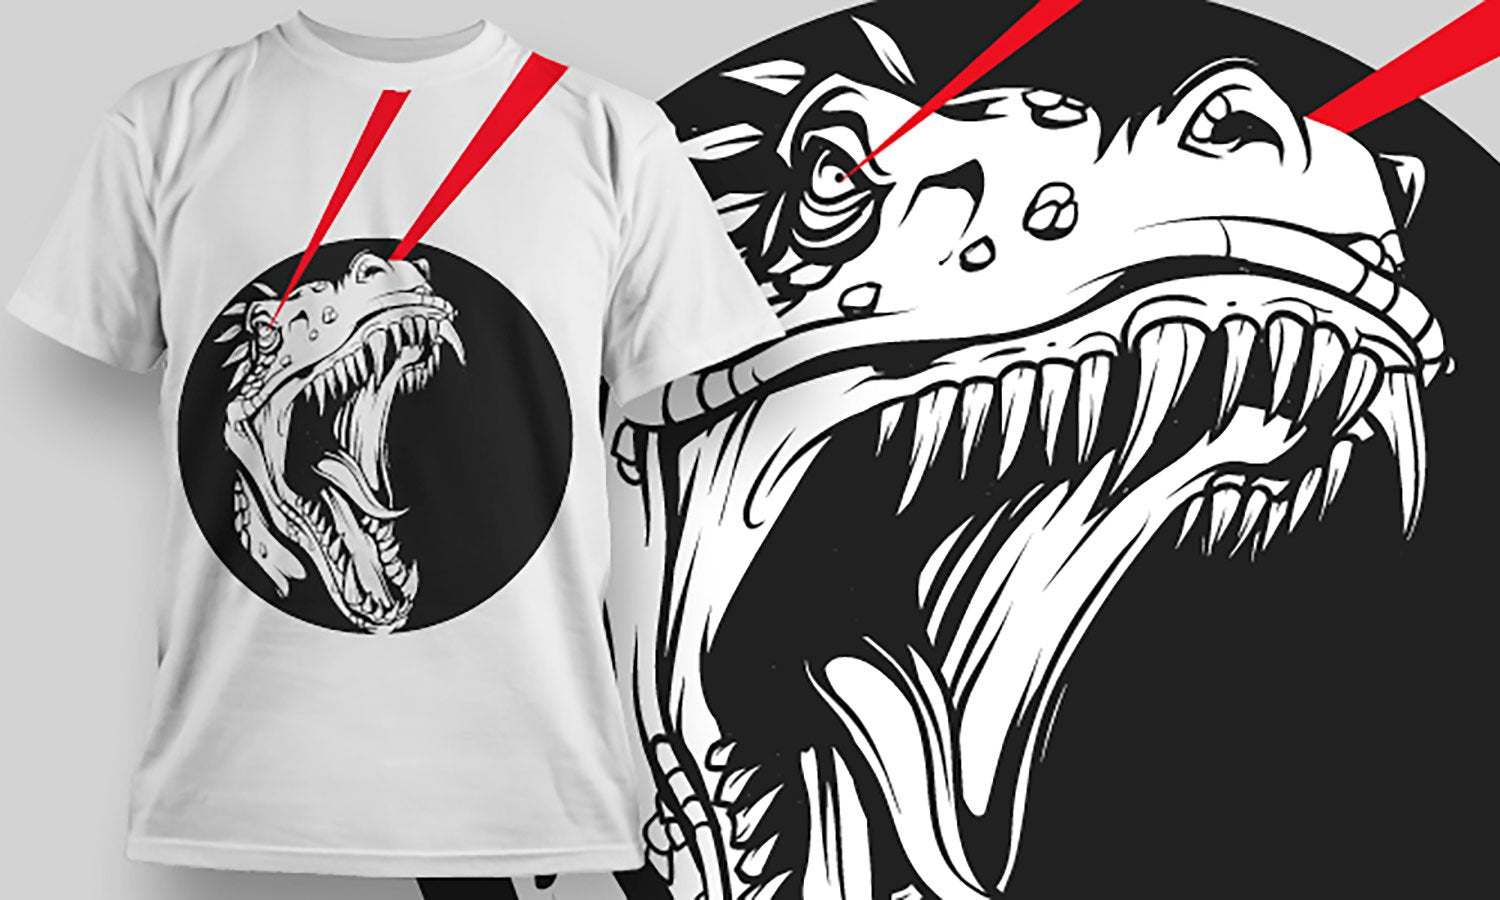 Dragon - Printed T-Shirt for Men, Women and Kids - TS258